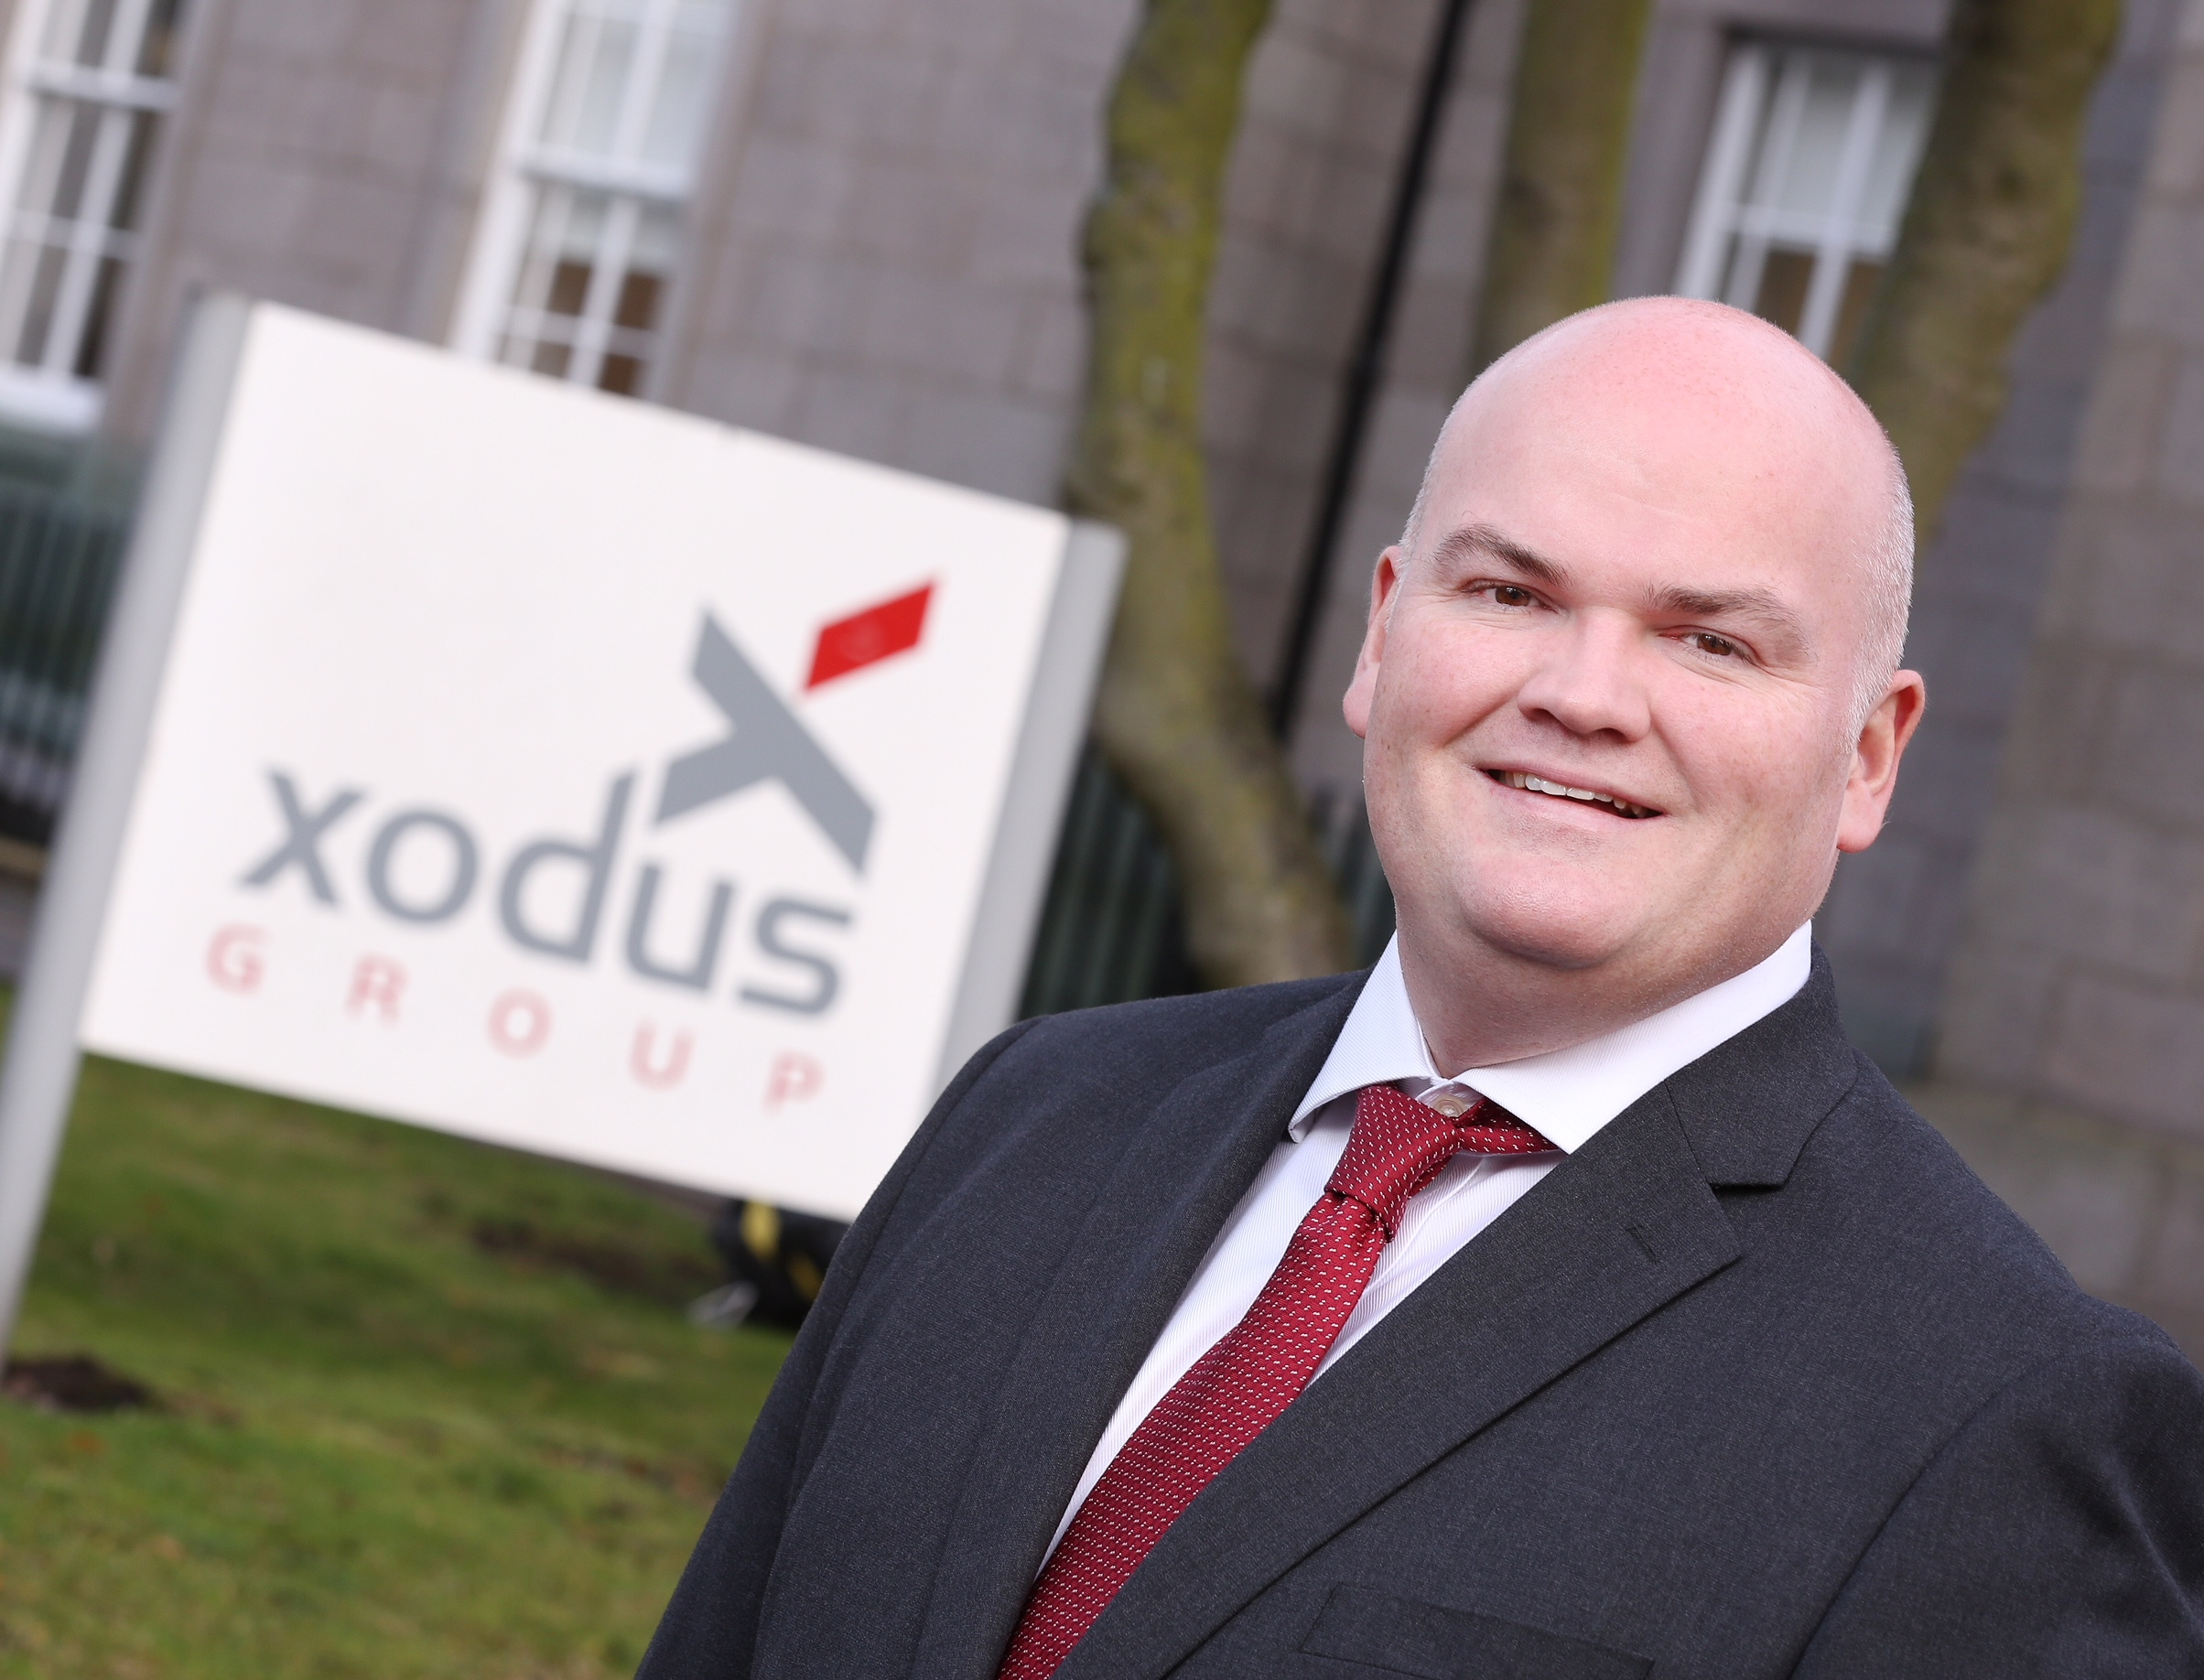 Andrew Wylie, director for Scotland and Norway at Xodus Group